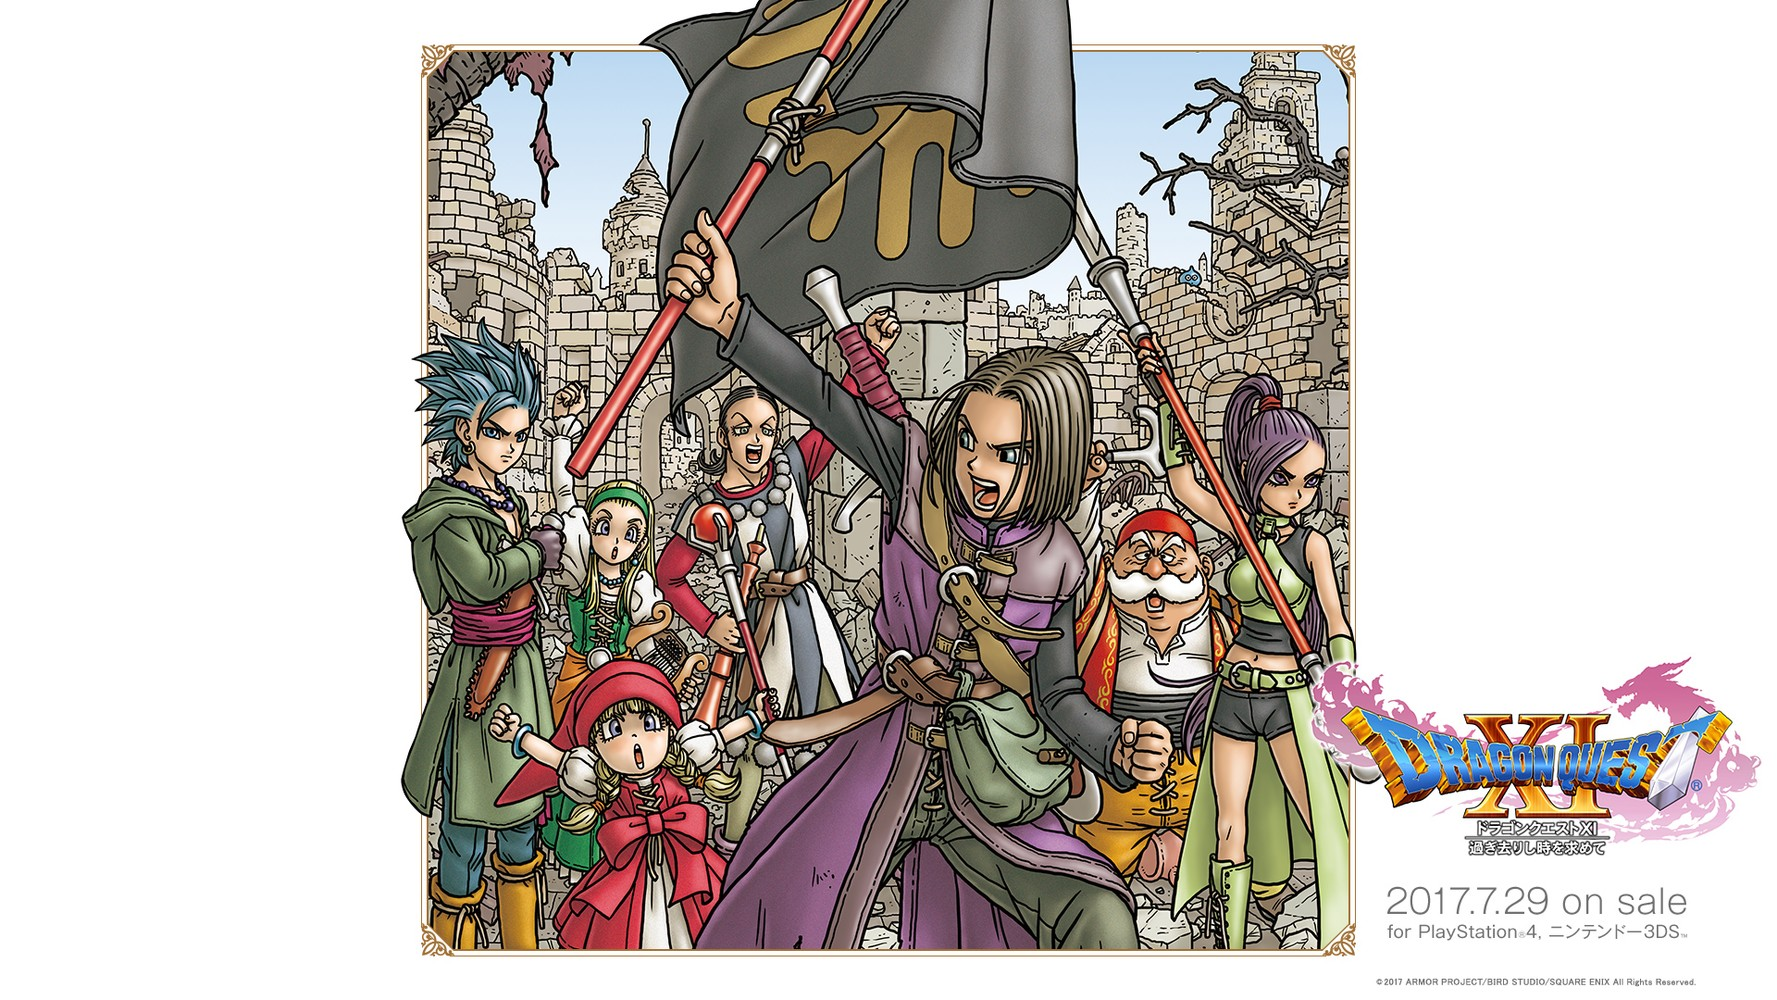 Dragon Quest XI: mostratoil prologo in CG